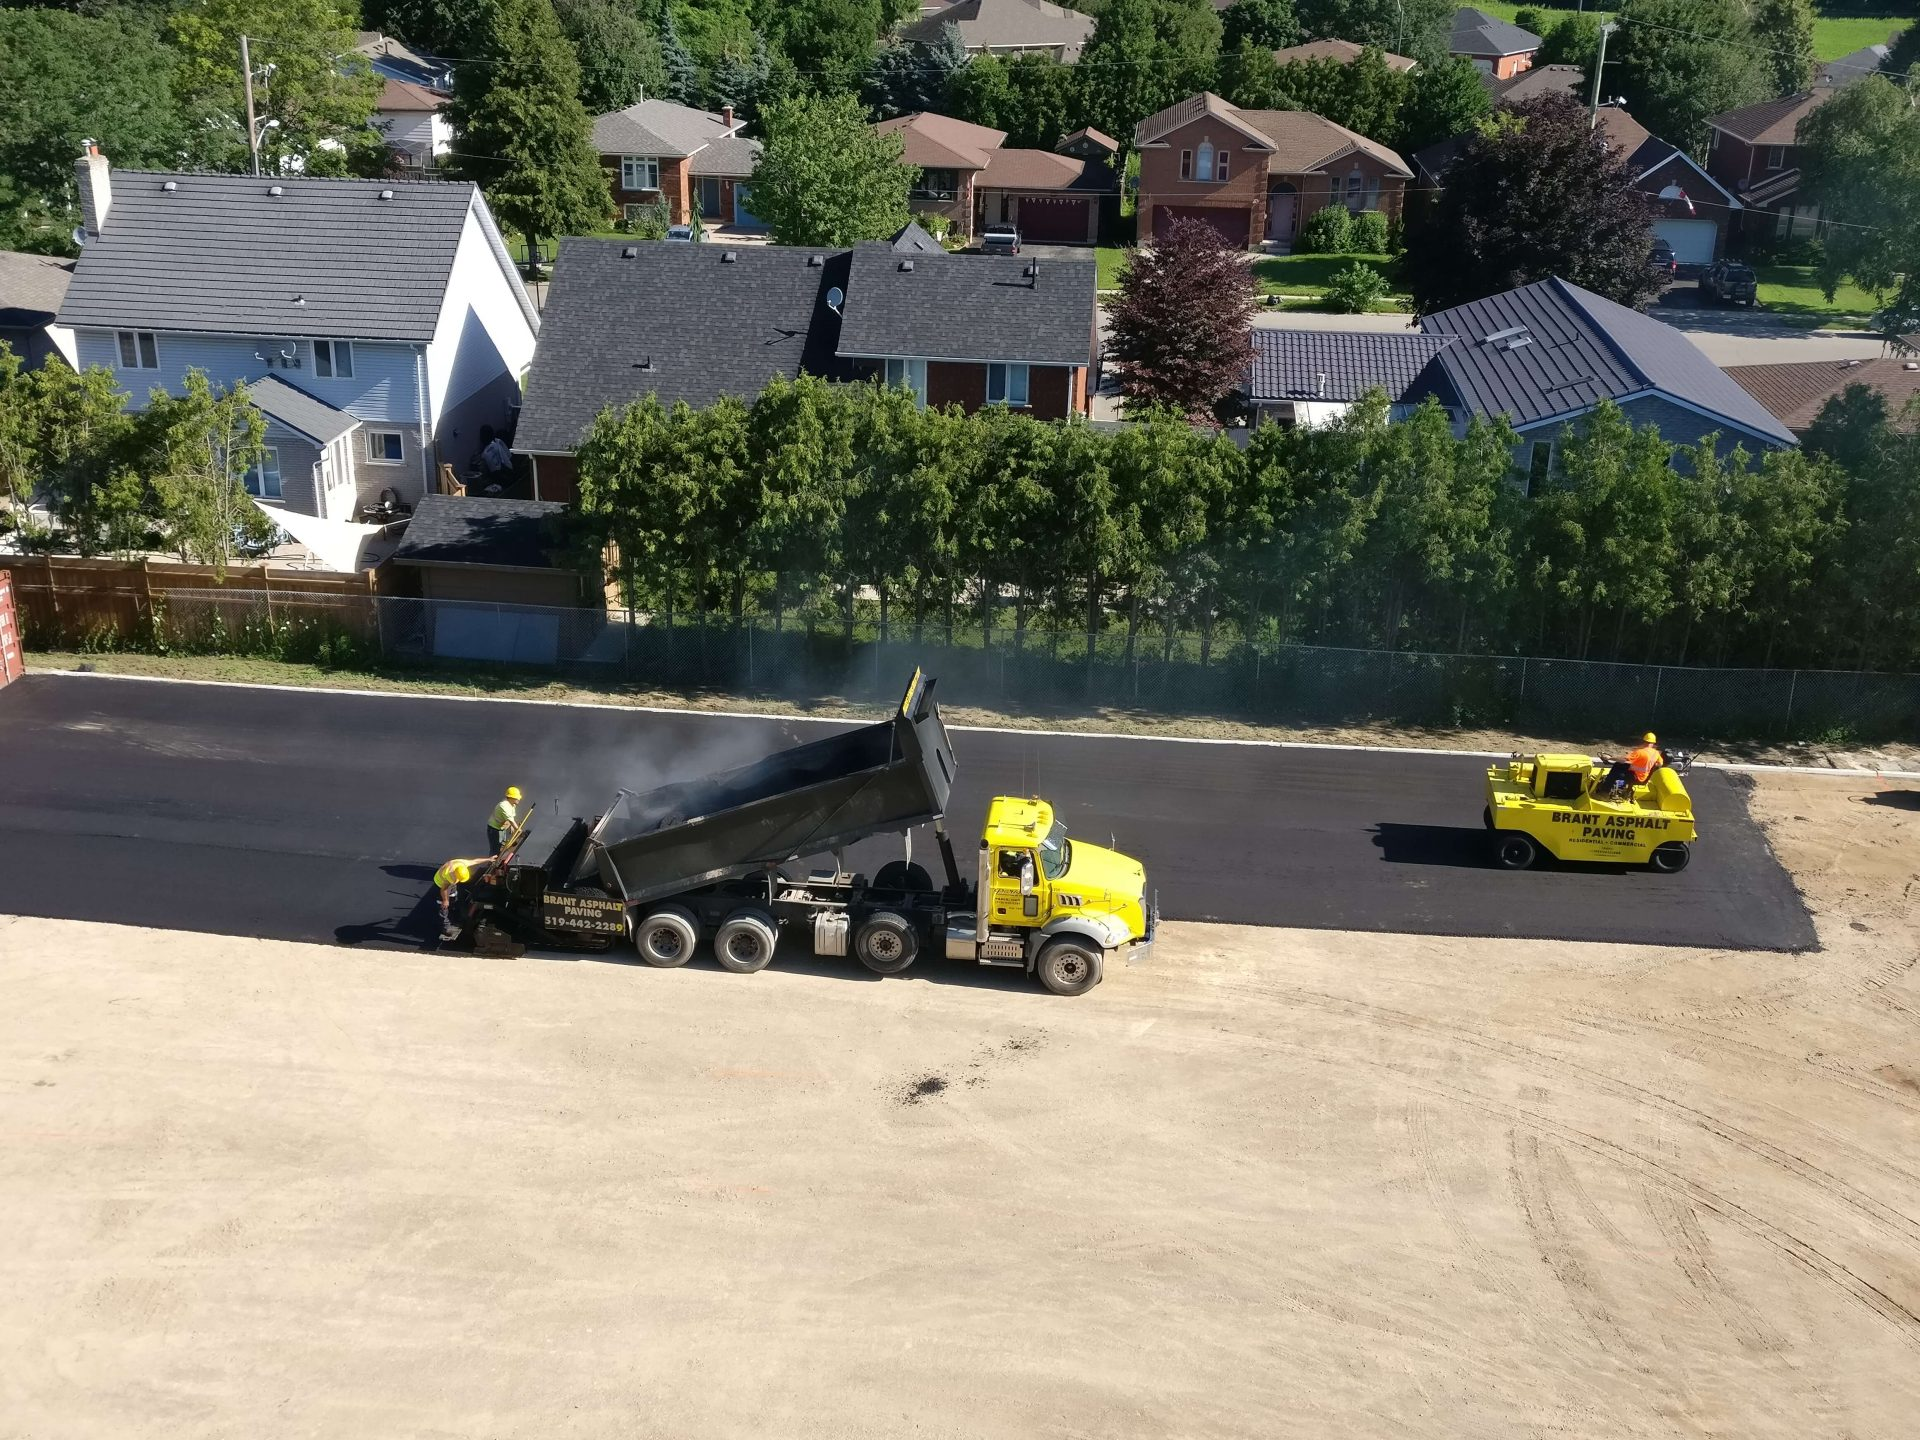 Paris construction truck dumping asphalt